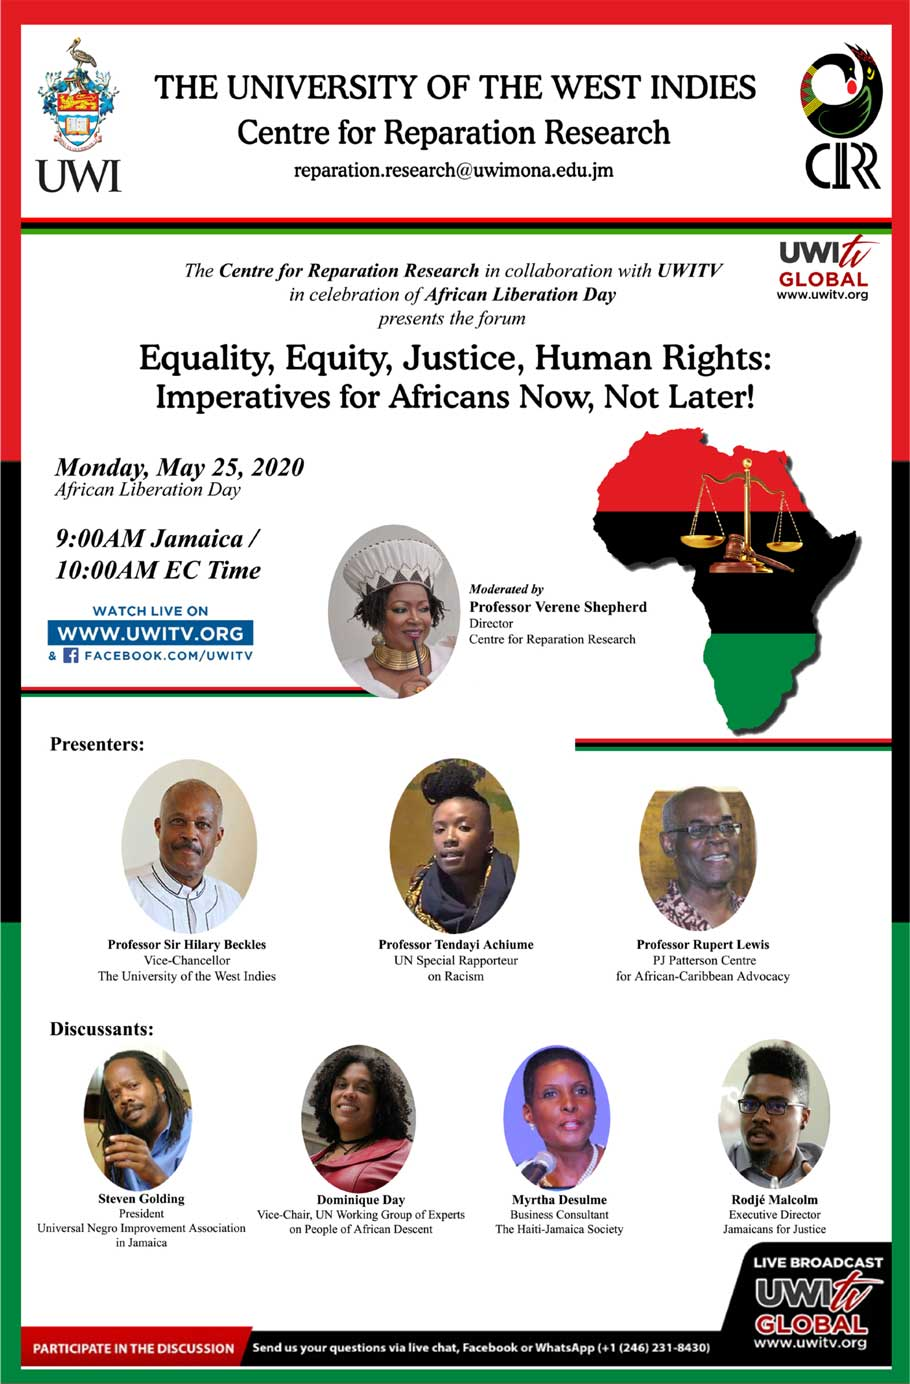 "The Centre for Reparation Research (CRR) invites you to join and participate in our second virtual seminar on Monday, May 25, 2020 in celebration of African Liberation Day entitled ""Equality, Equity, Justice, Human Rights: Imperatives for Africans Now, Not later!"""